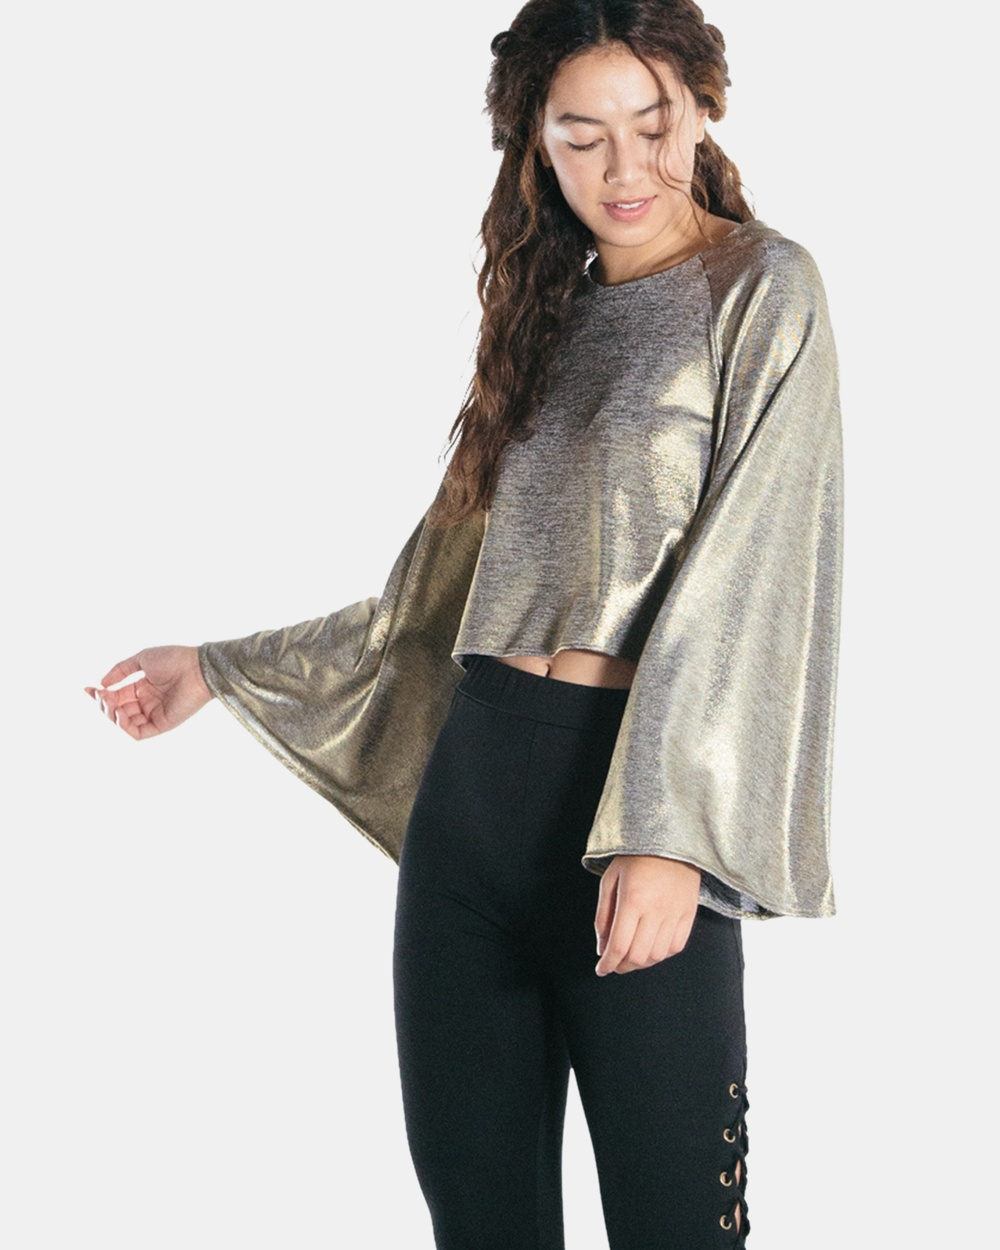 The Rushing Hour Glory Box Blouse Cropped tops Gold Glory Box Blouse